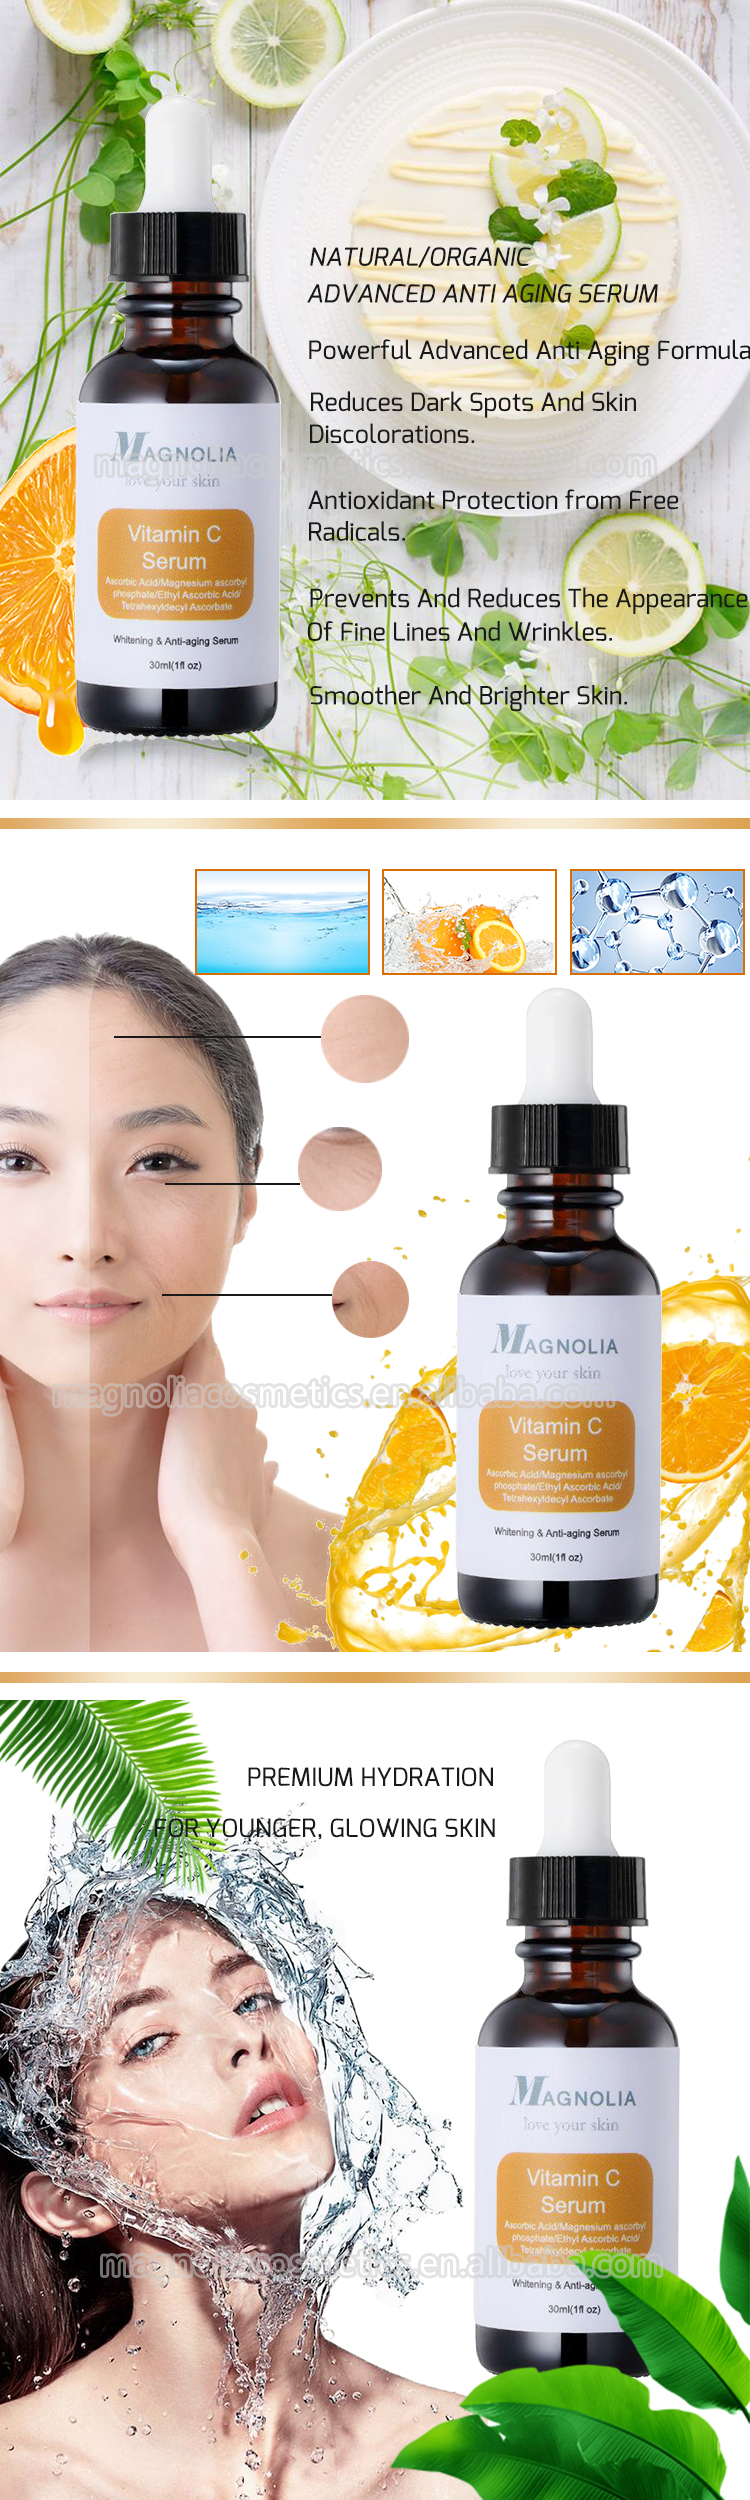 Skin Care Organic Hyaluronic Acid 20% Vitamin C Serum with MSDS GMP